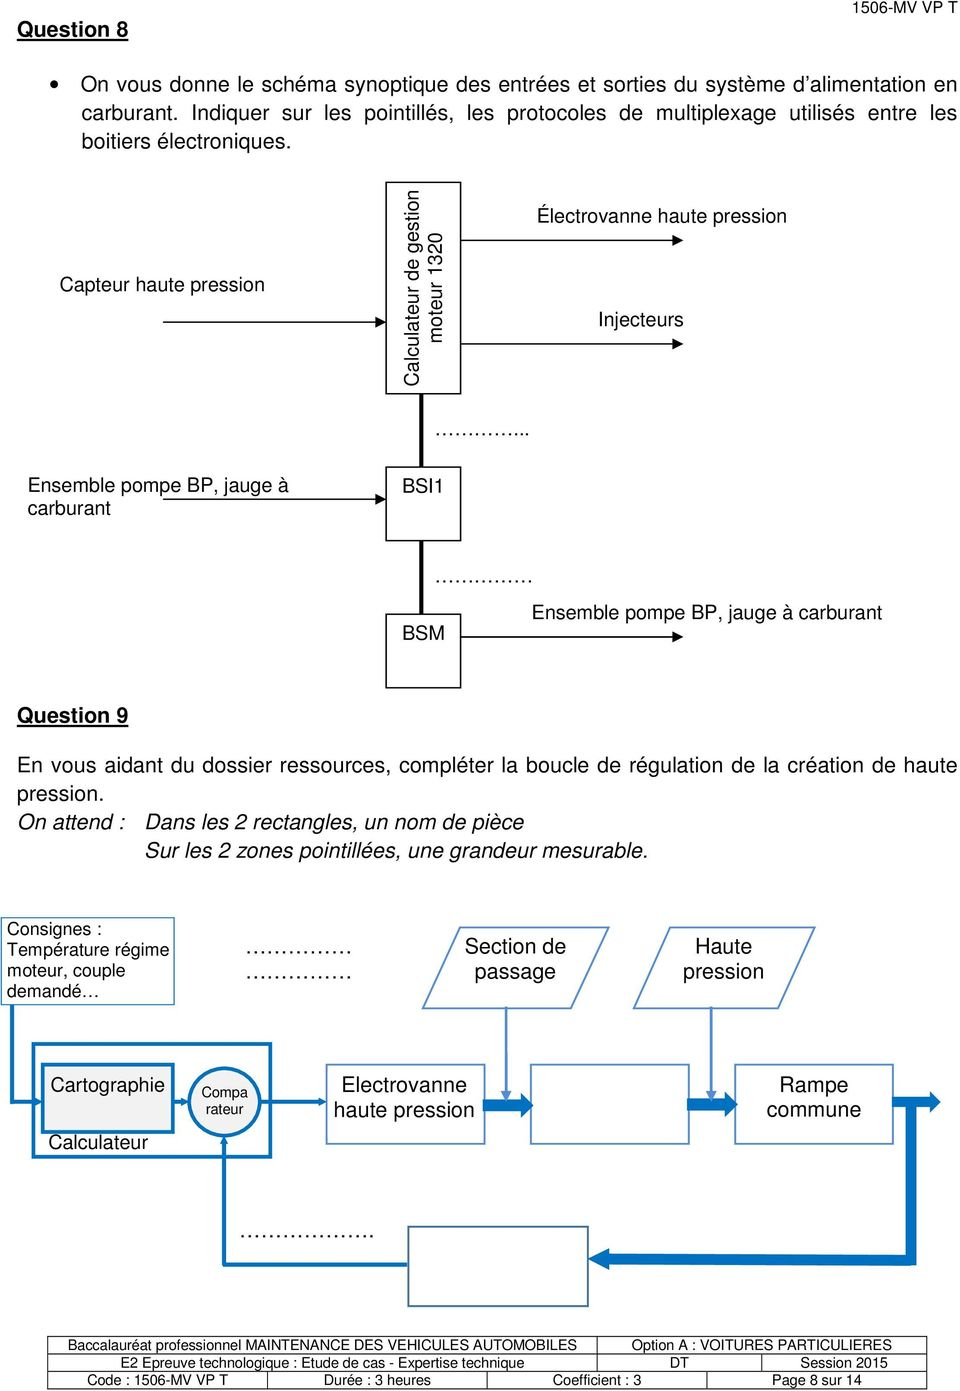 .. Ensemble pompe BP, jauge à carburant BSI1 BSM Ensemble pompe BP, jauge à carburant Question 9 En vous aidant du dossier ressources, compléter la boucle de régulation de la création de haute pression.